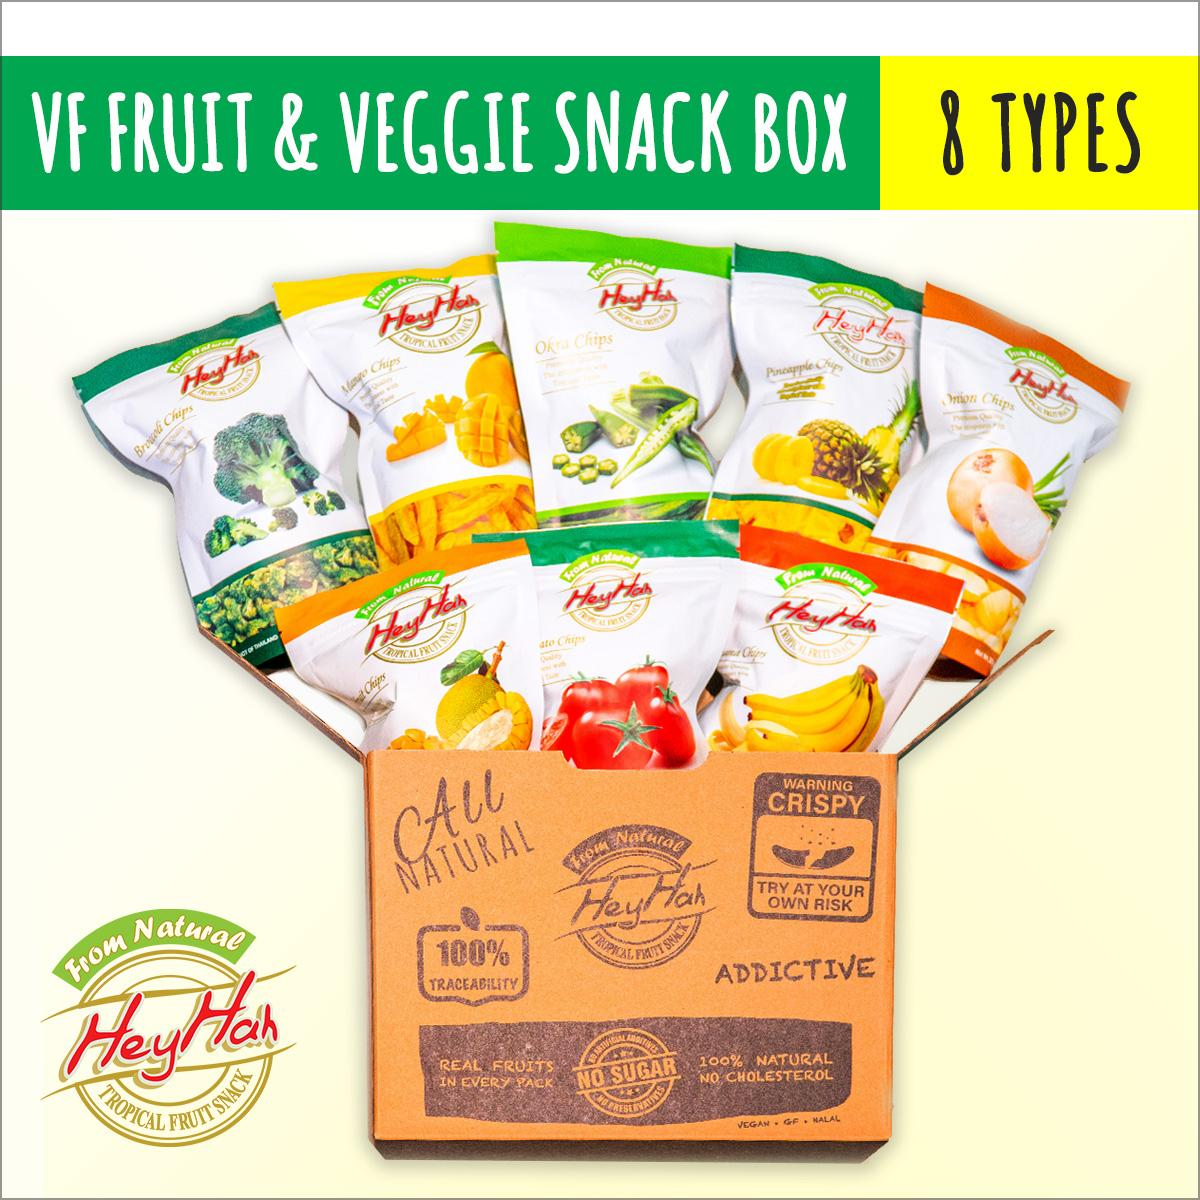 Heyhah Premium Fruits & Vegetable Chips Party Pack - (8 Flavours: Mango, Banana, Jackfruit, Pineapple, Okra (ladys Finger), Broccoli, Cherry Tomato, Onion) By Heyhah Health Food.